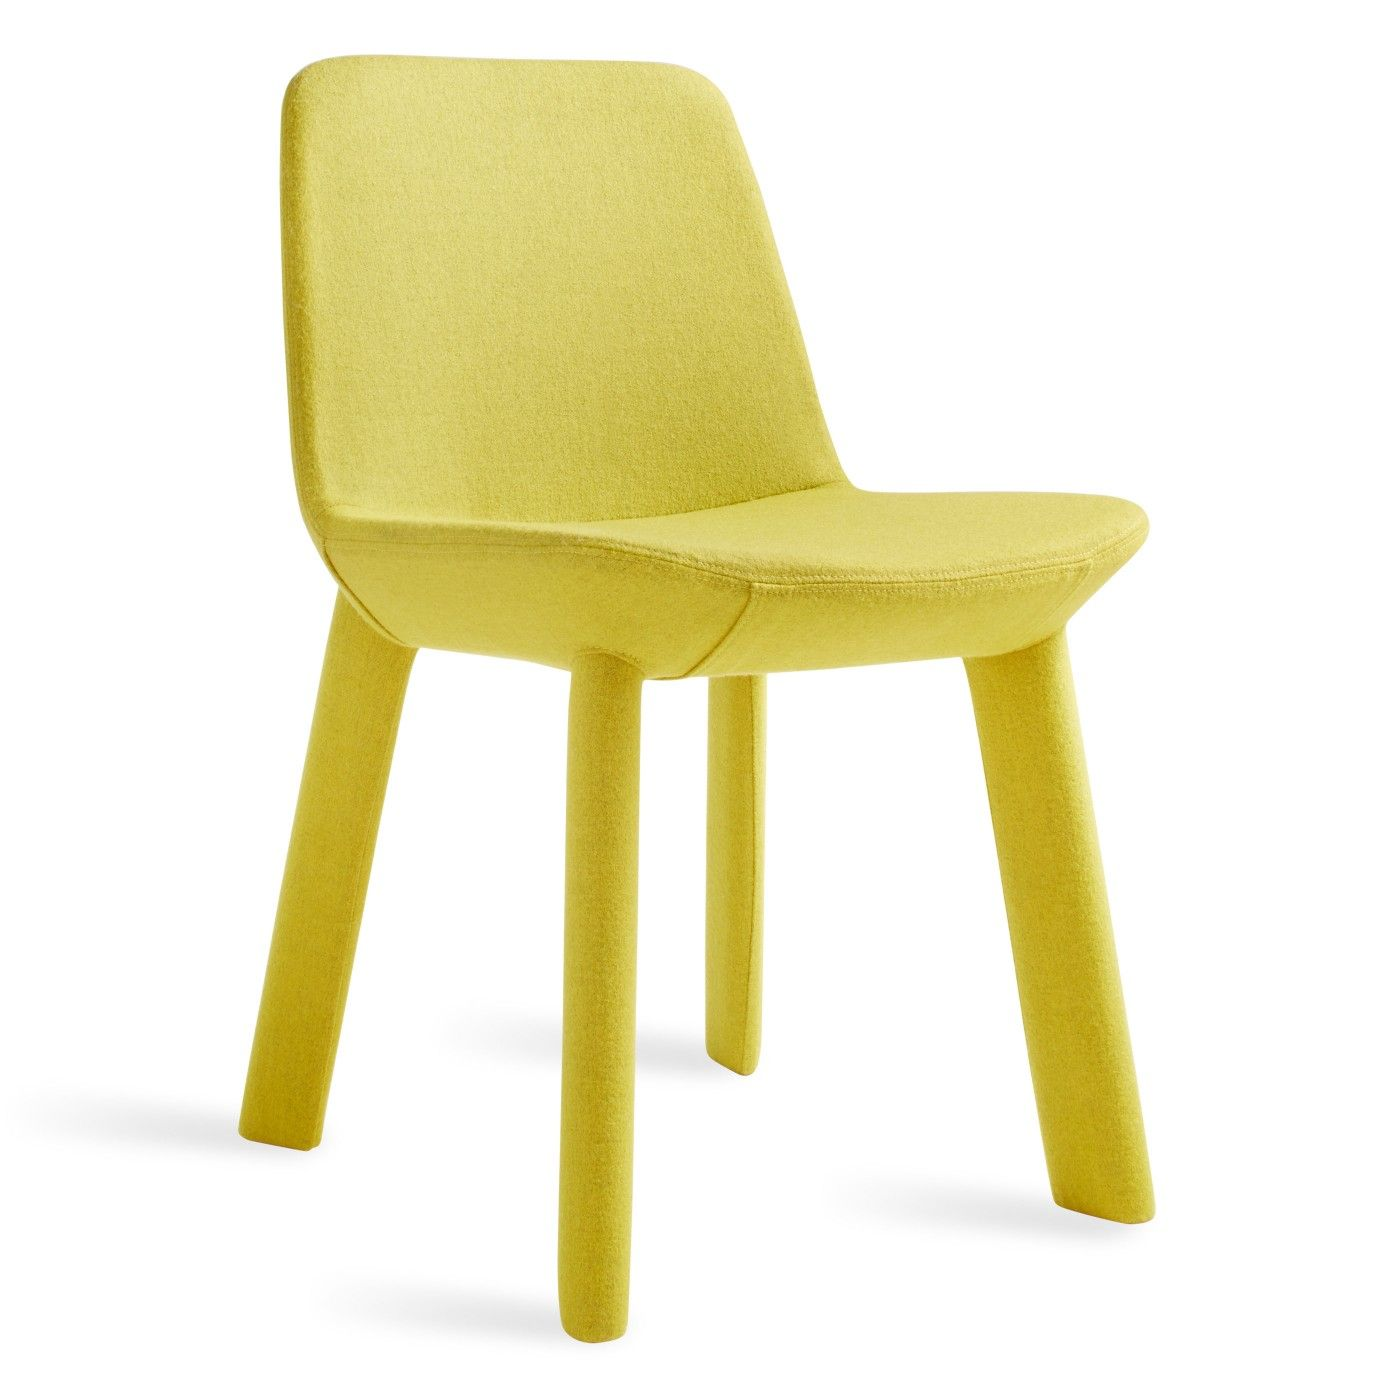 Yellow Upholstered Dining Room Chairs Used Dental Neat Chair In 2018 Furniture